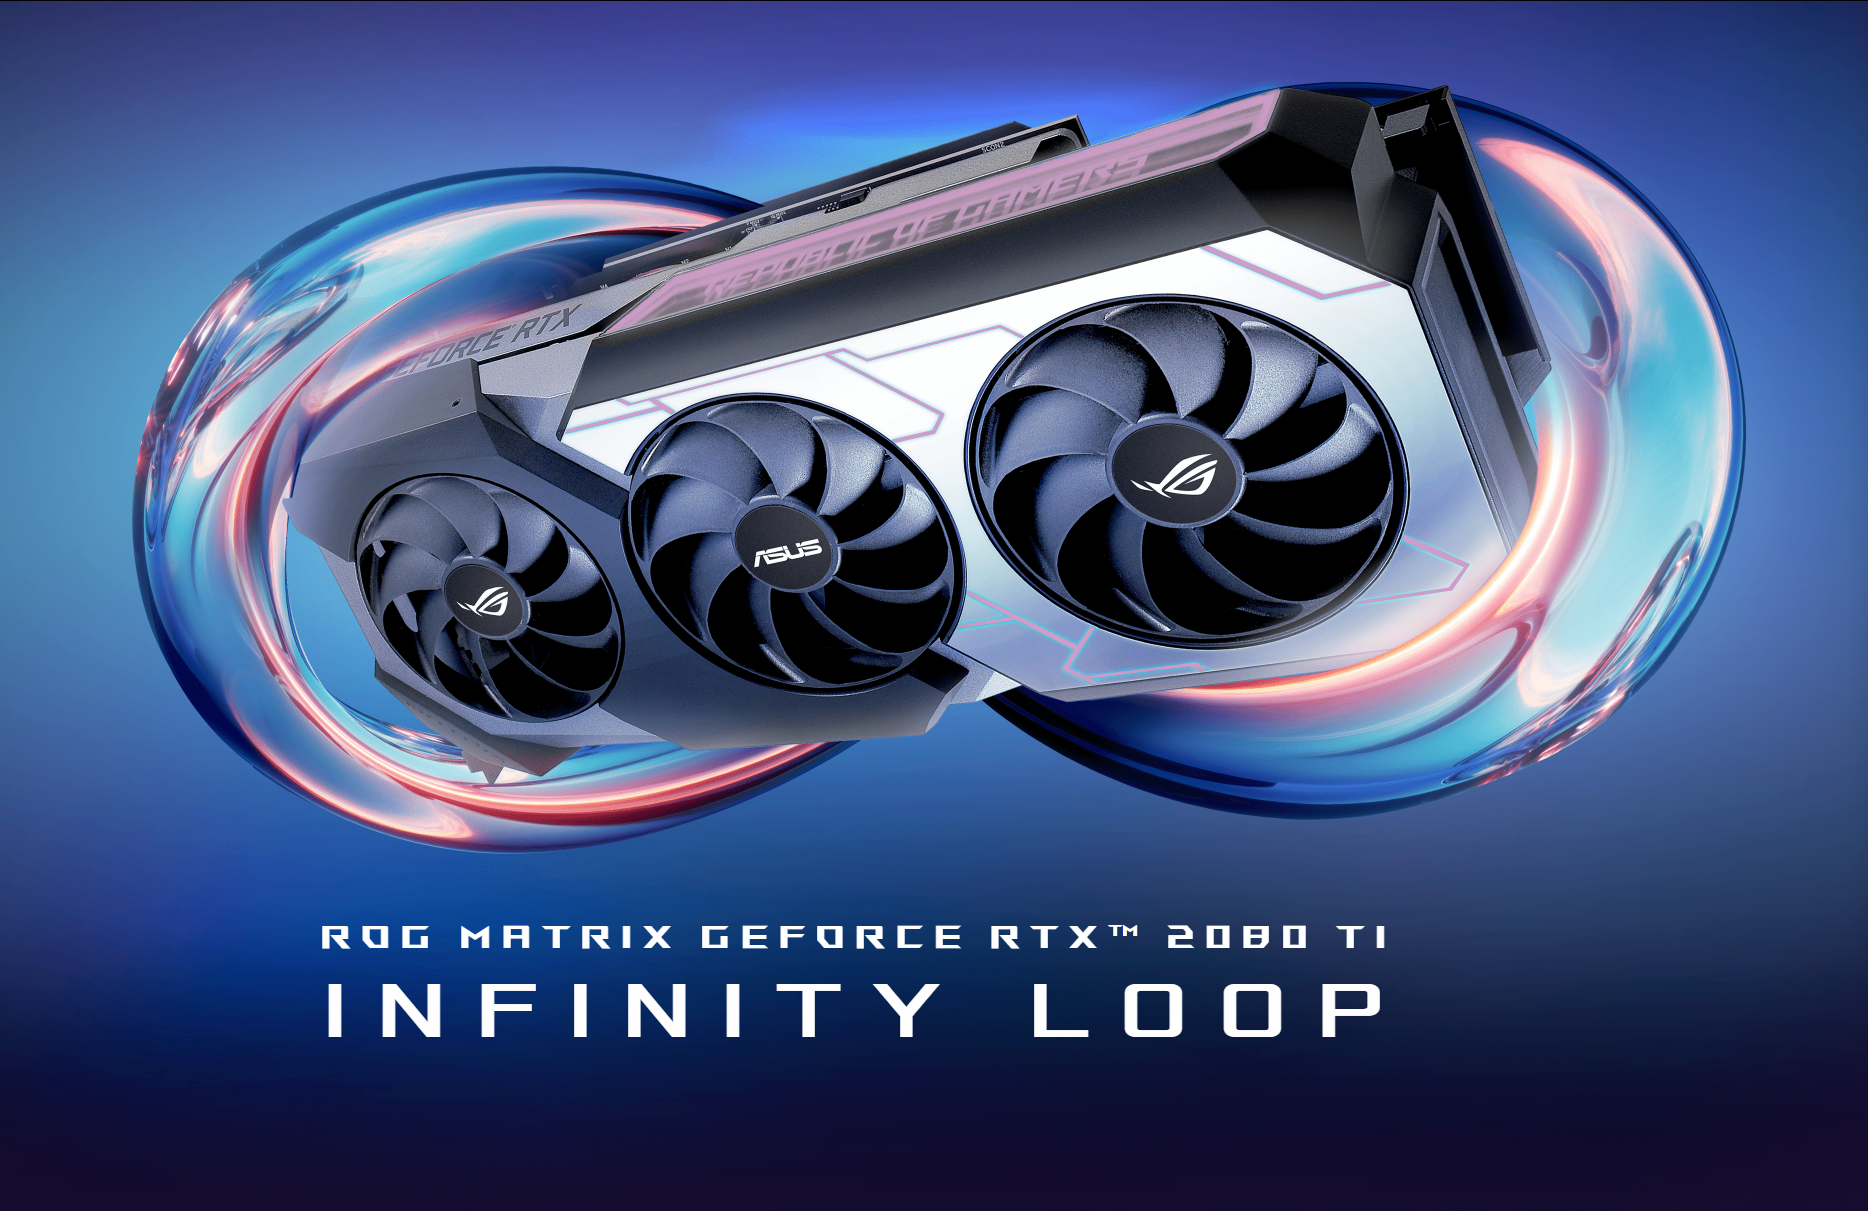 ASUS ROG MATRIX GeForce RTX 2080 Ti With Infinity Loop Announced